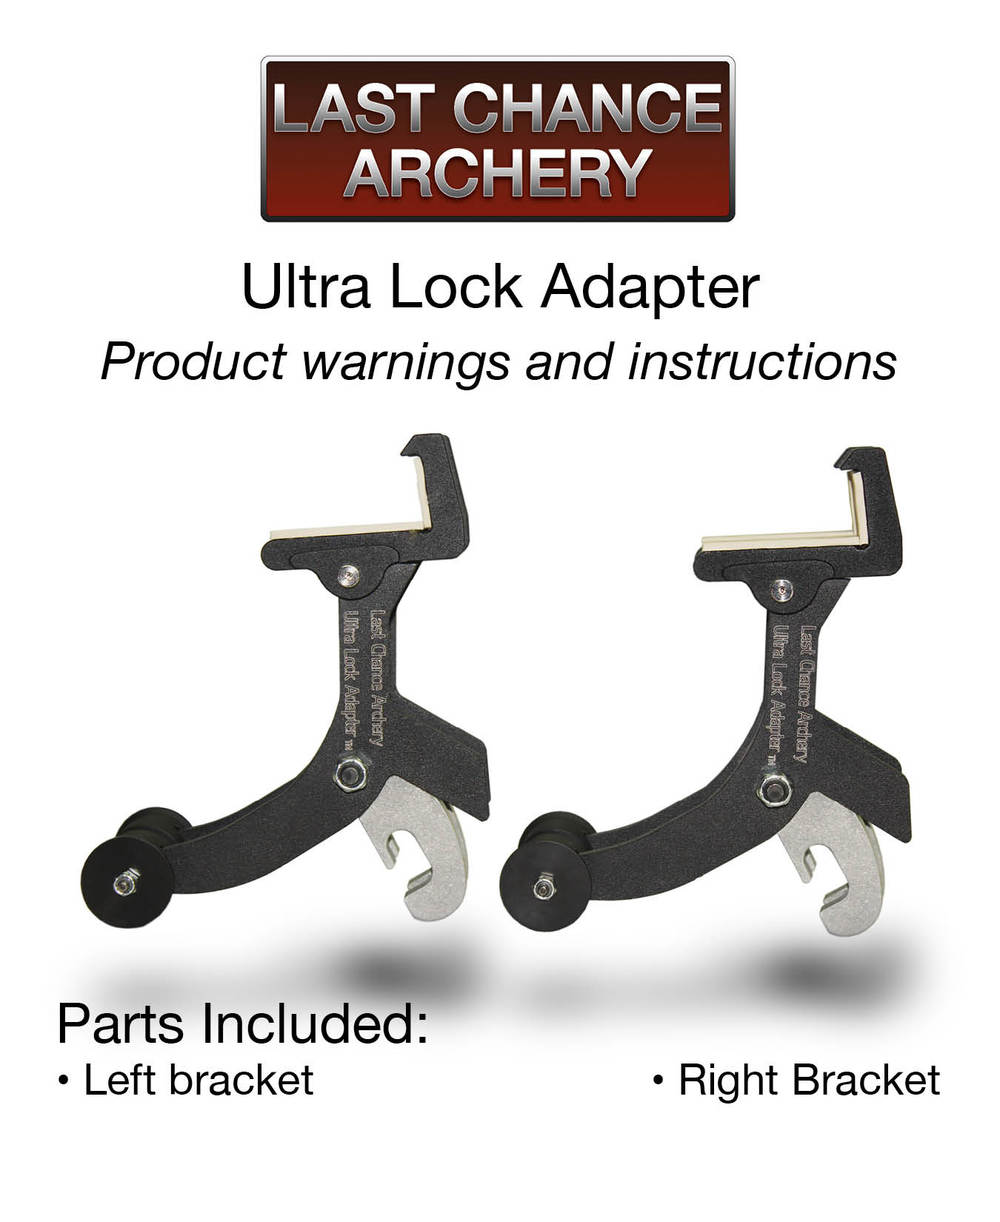 Ultra Lock Adapter Instructions .jpg